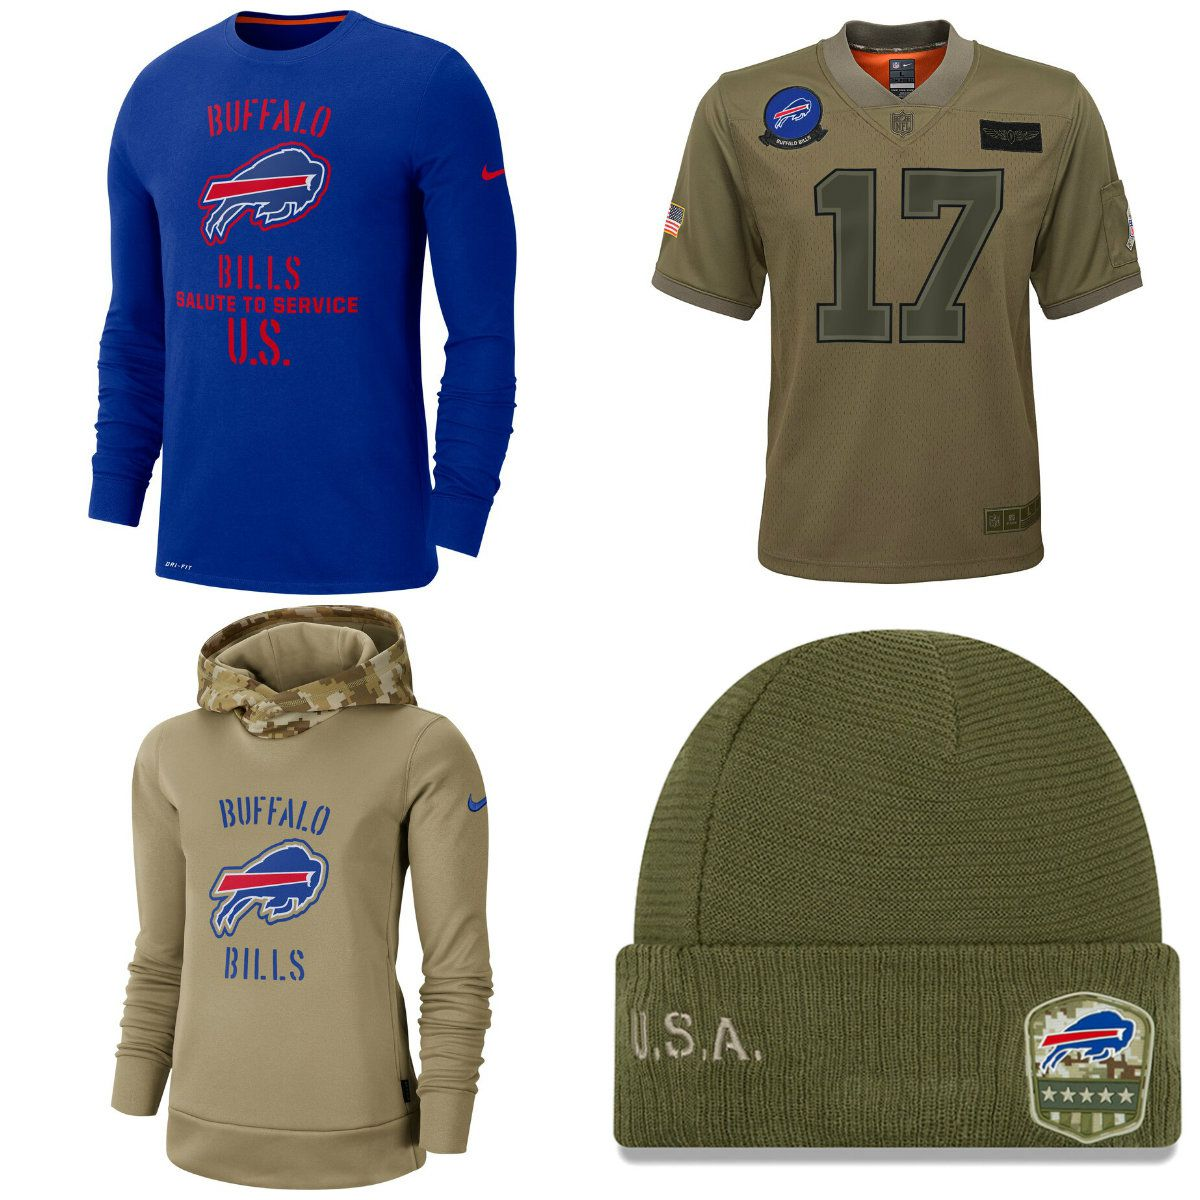 The NFL is honoring the U.S. military with a Salute to Service Buffalo ...